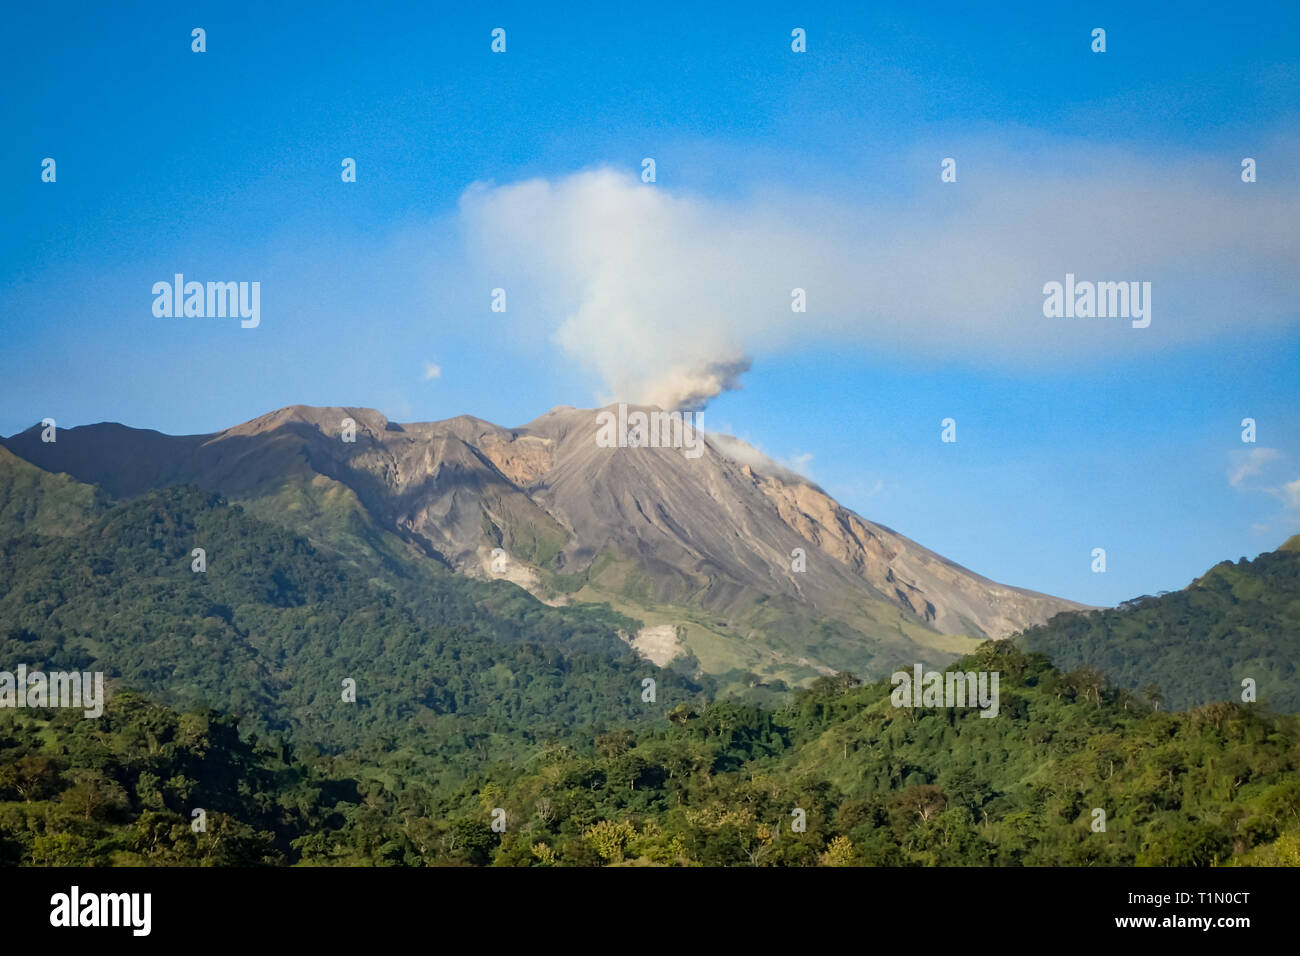 Active Volcano lets off steam in mountains of Nusa Tenggara, Indonesia - Stock Image